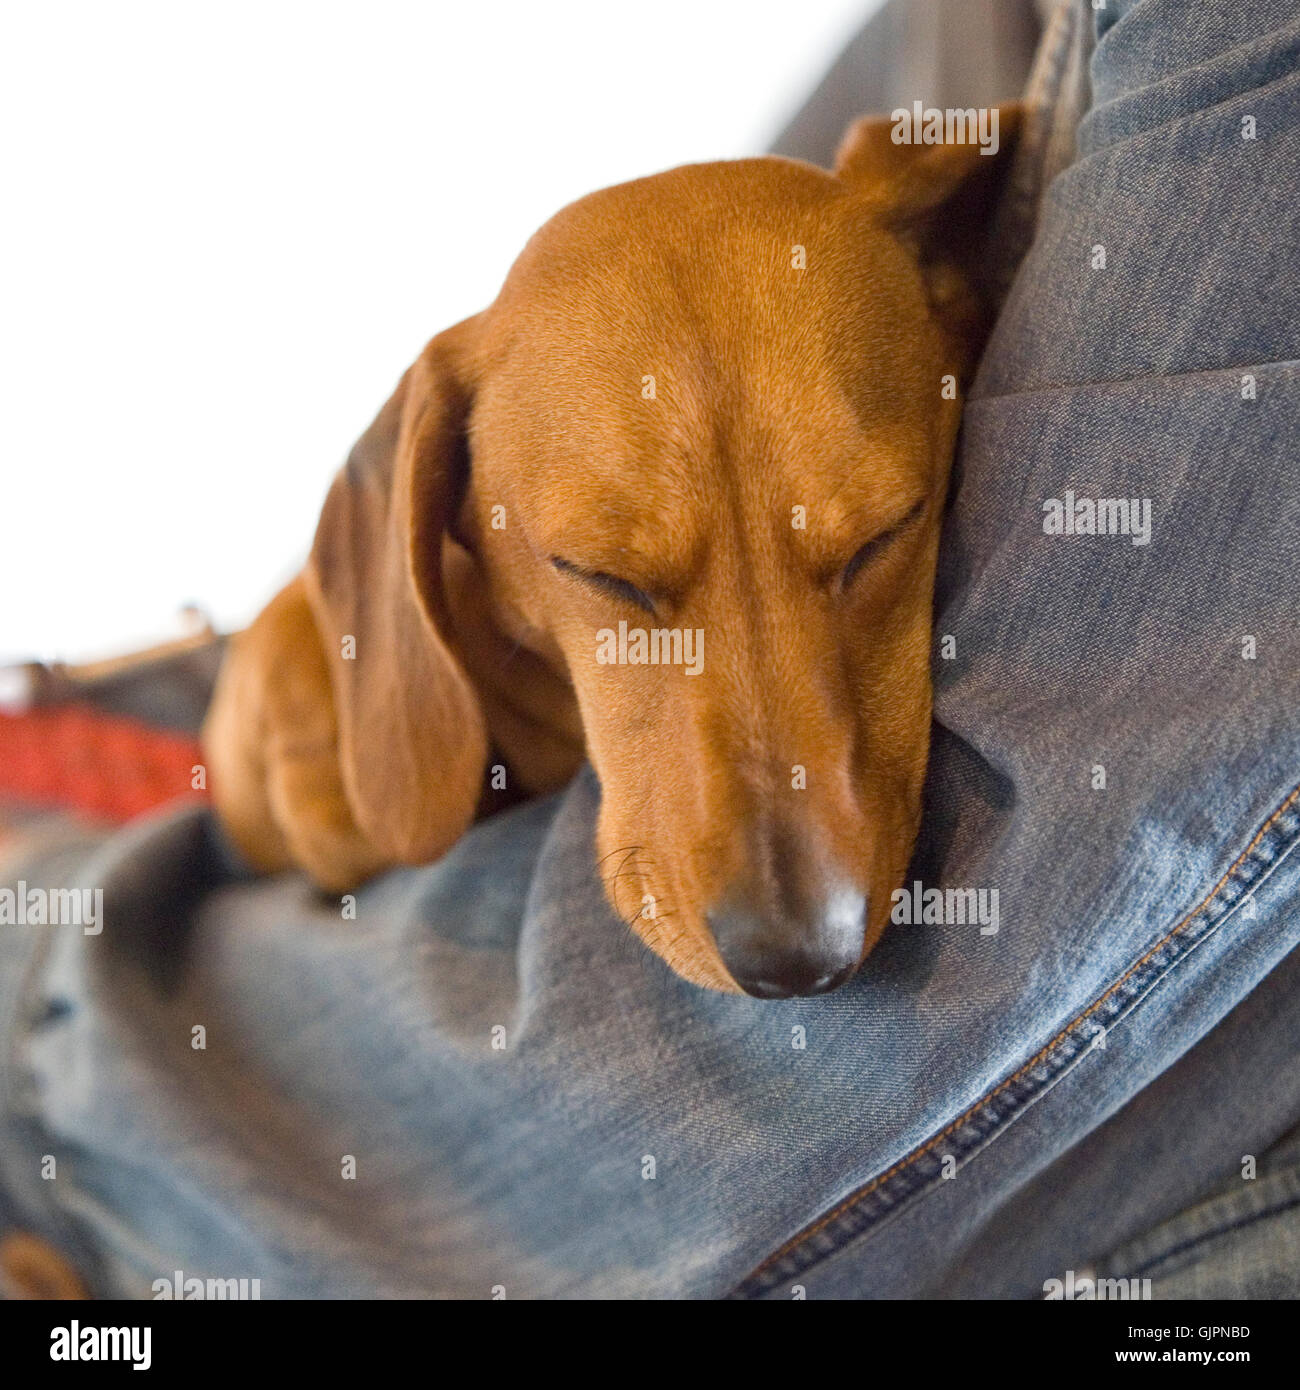 dachshund sleeping in a persons arms - Stock Image